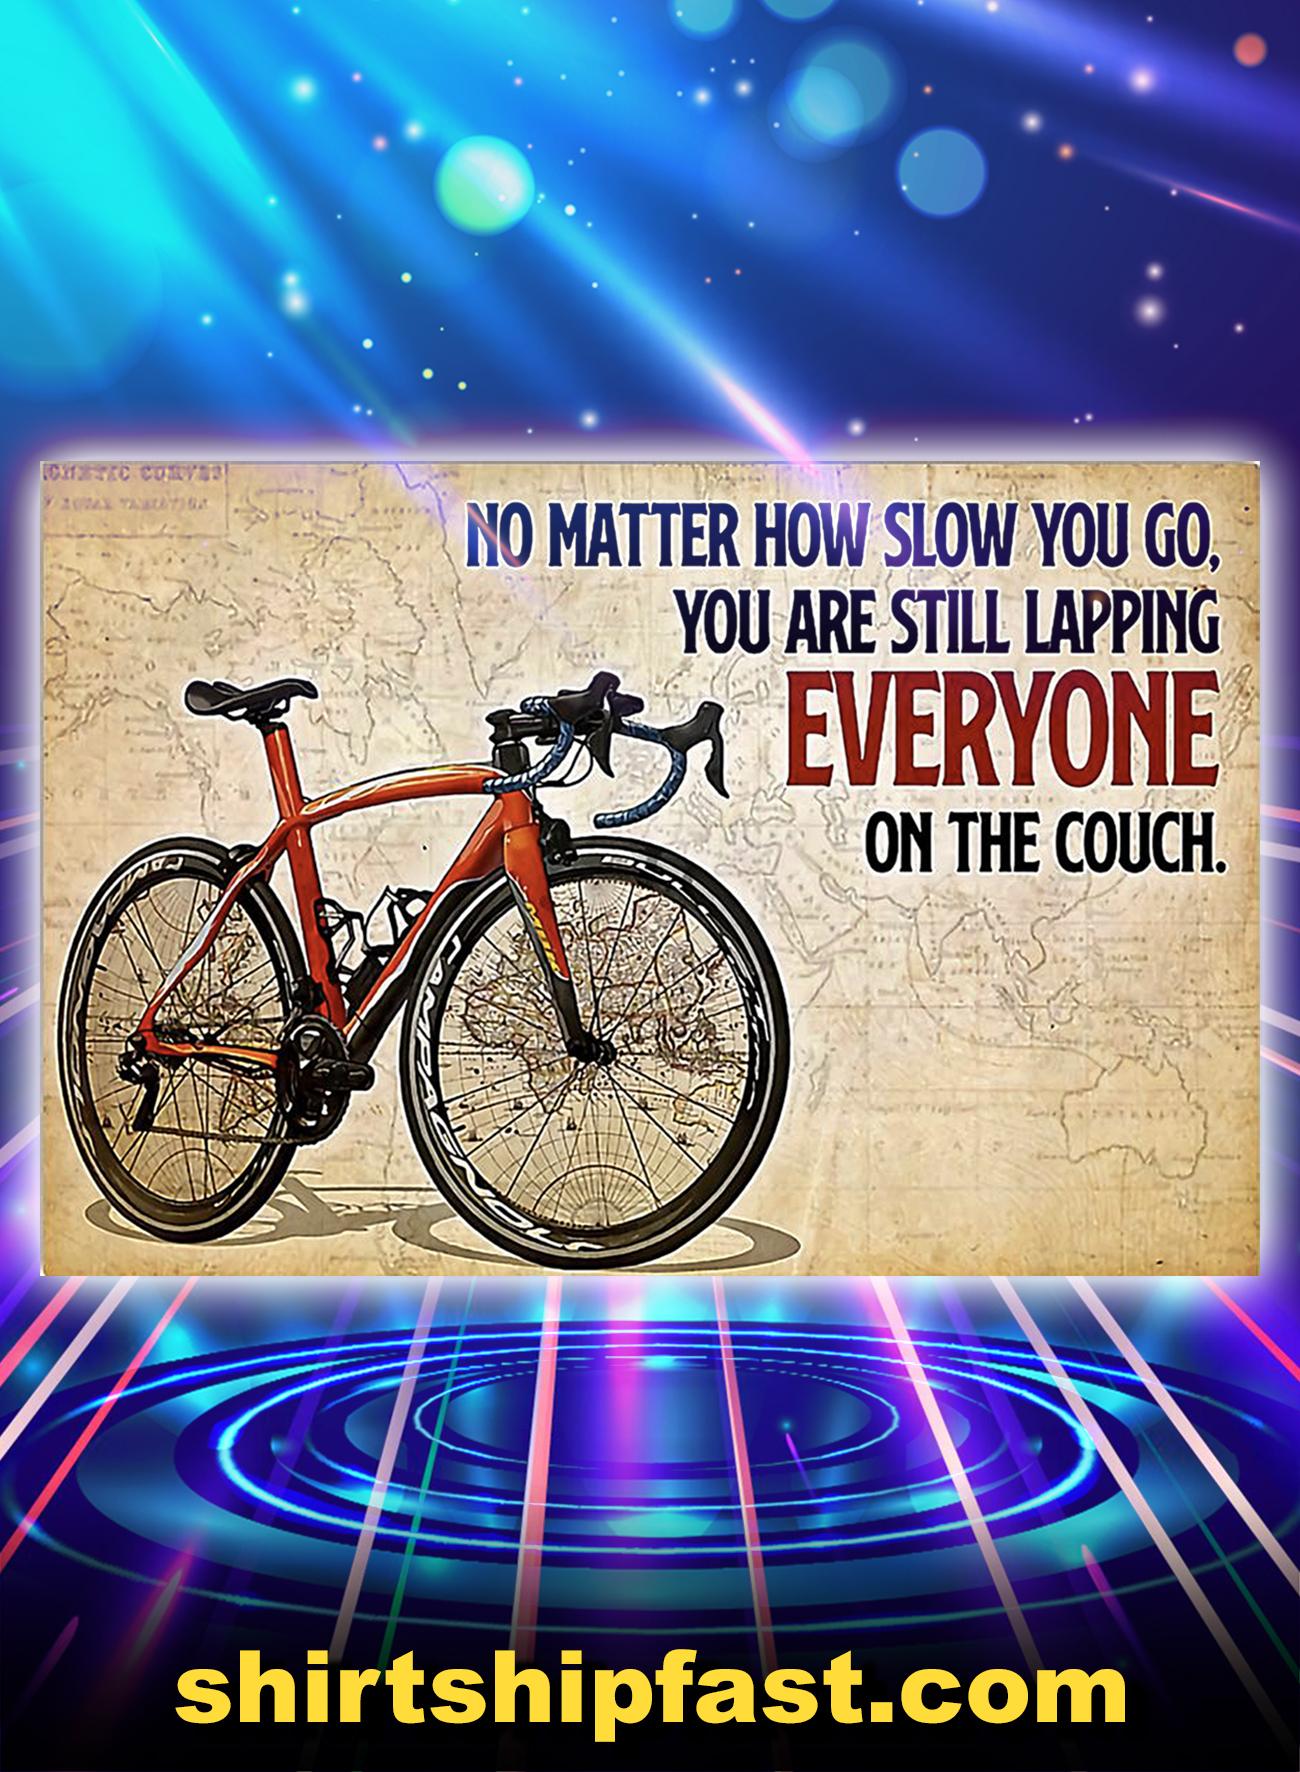 Cycling bicycle no matter how slow you go poster - A1